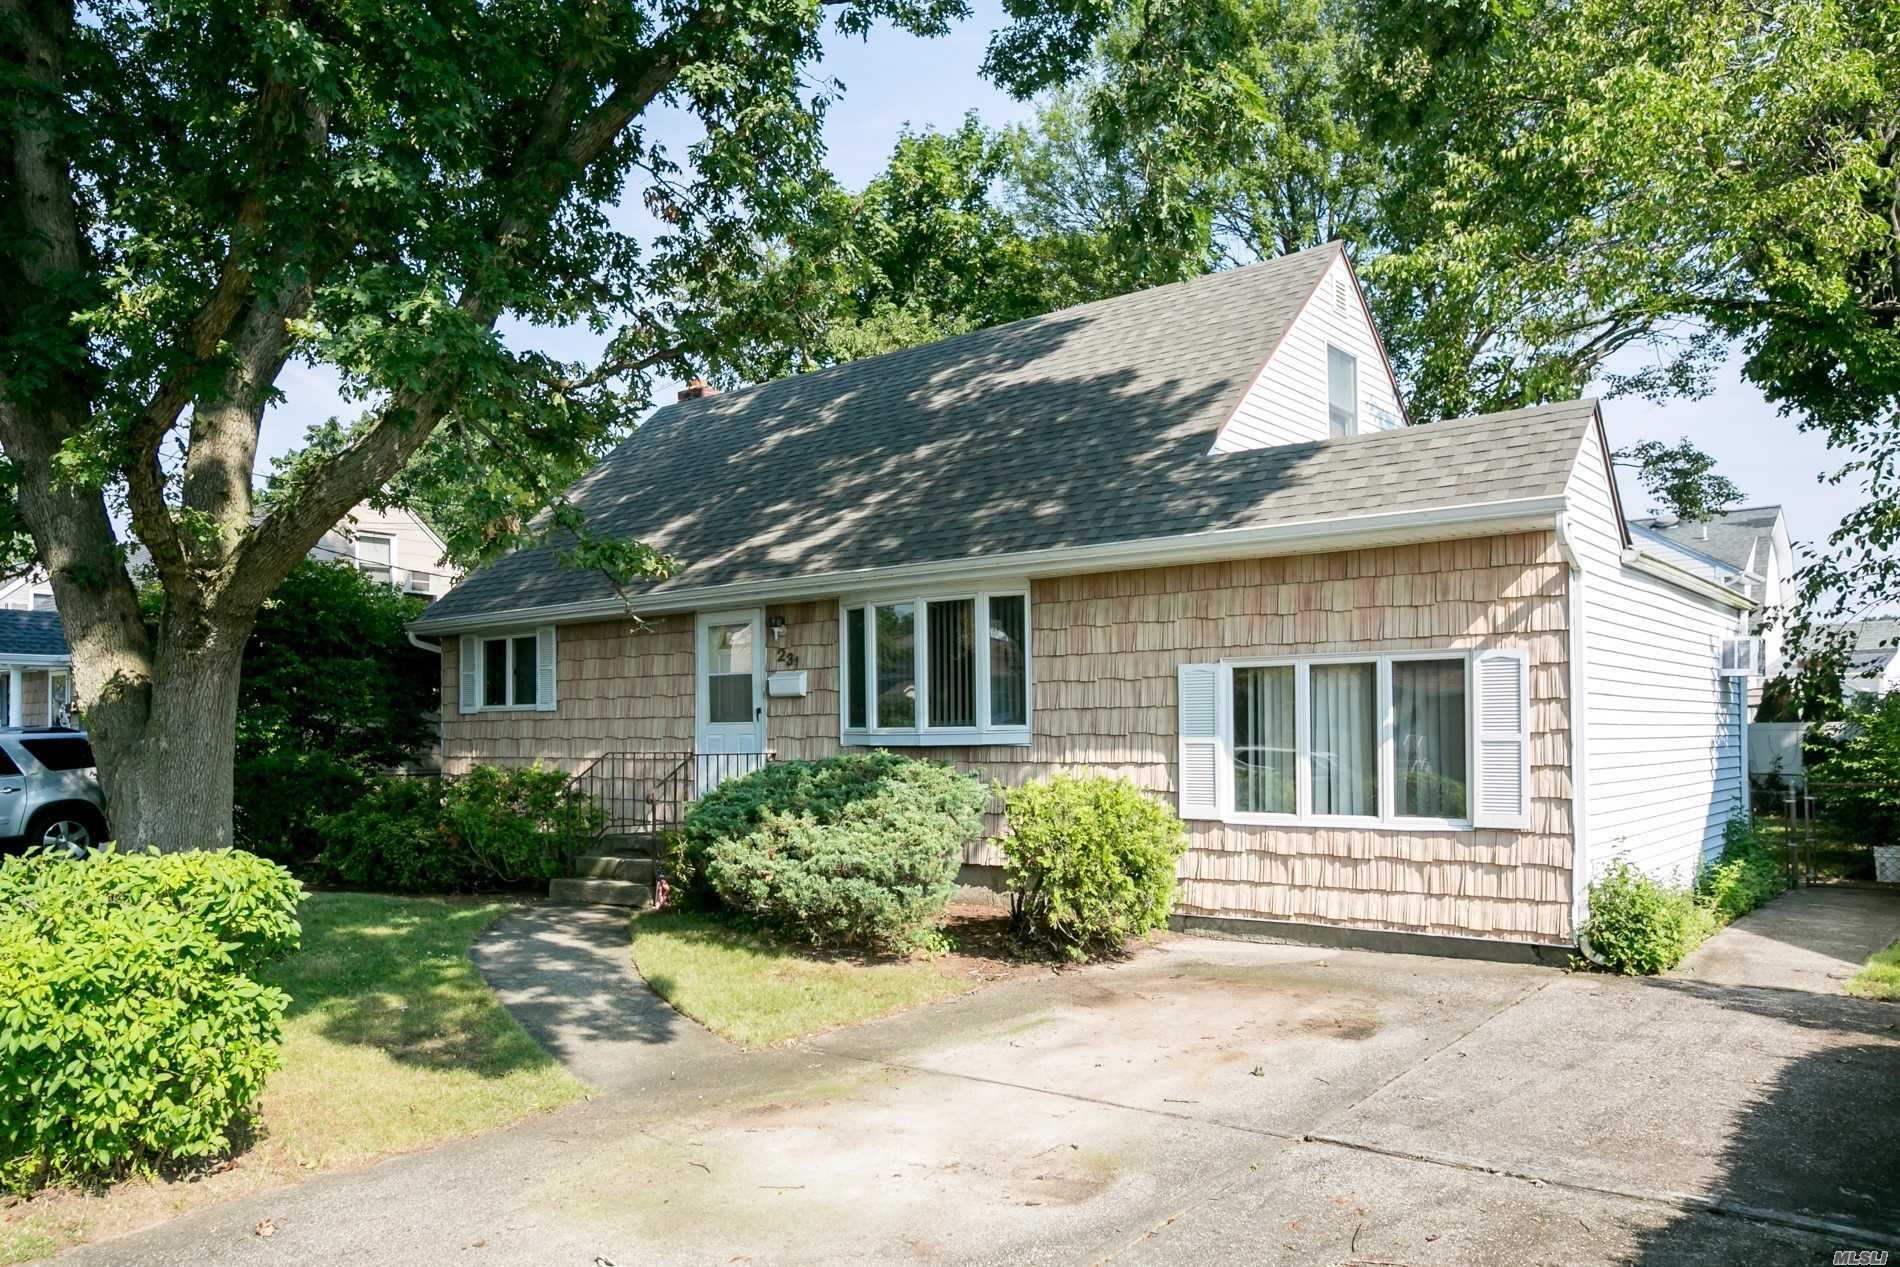 Nice Clean 4 Br, 1 Bth Cape In Plainedge Sd, Mid-Block Location, New Roof, 150 Amps, Andersen Windows, New Carpet, Full Basement.